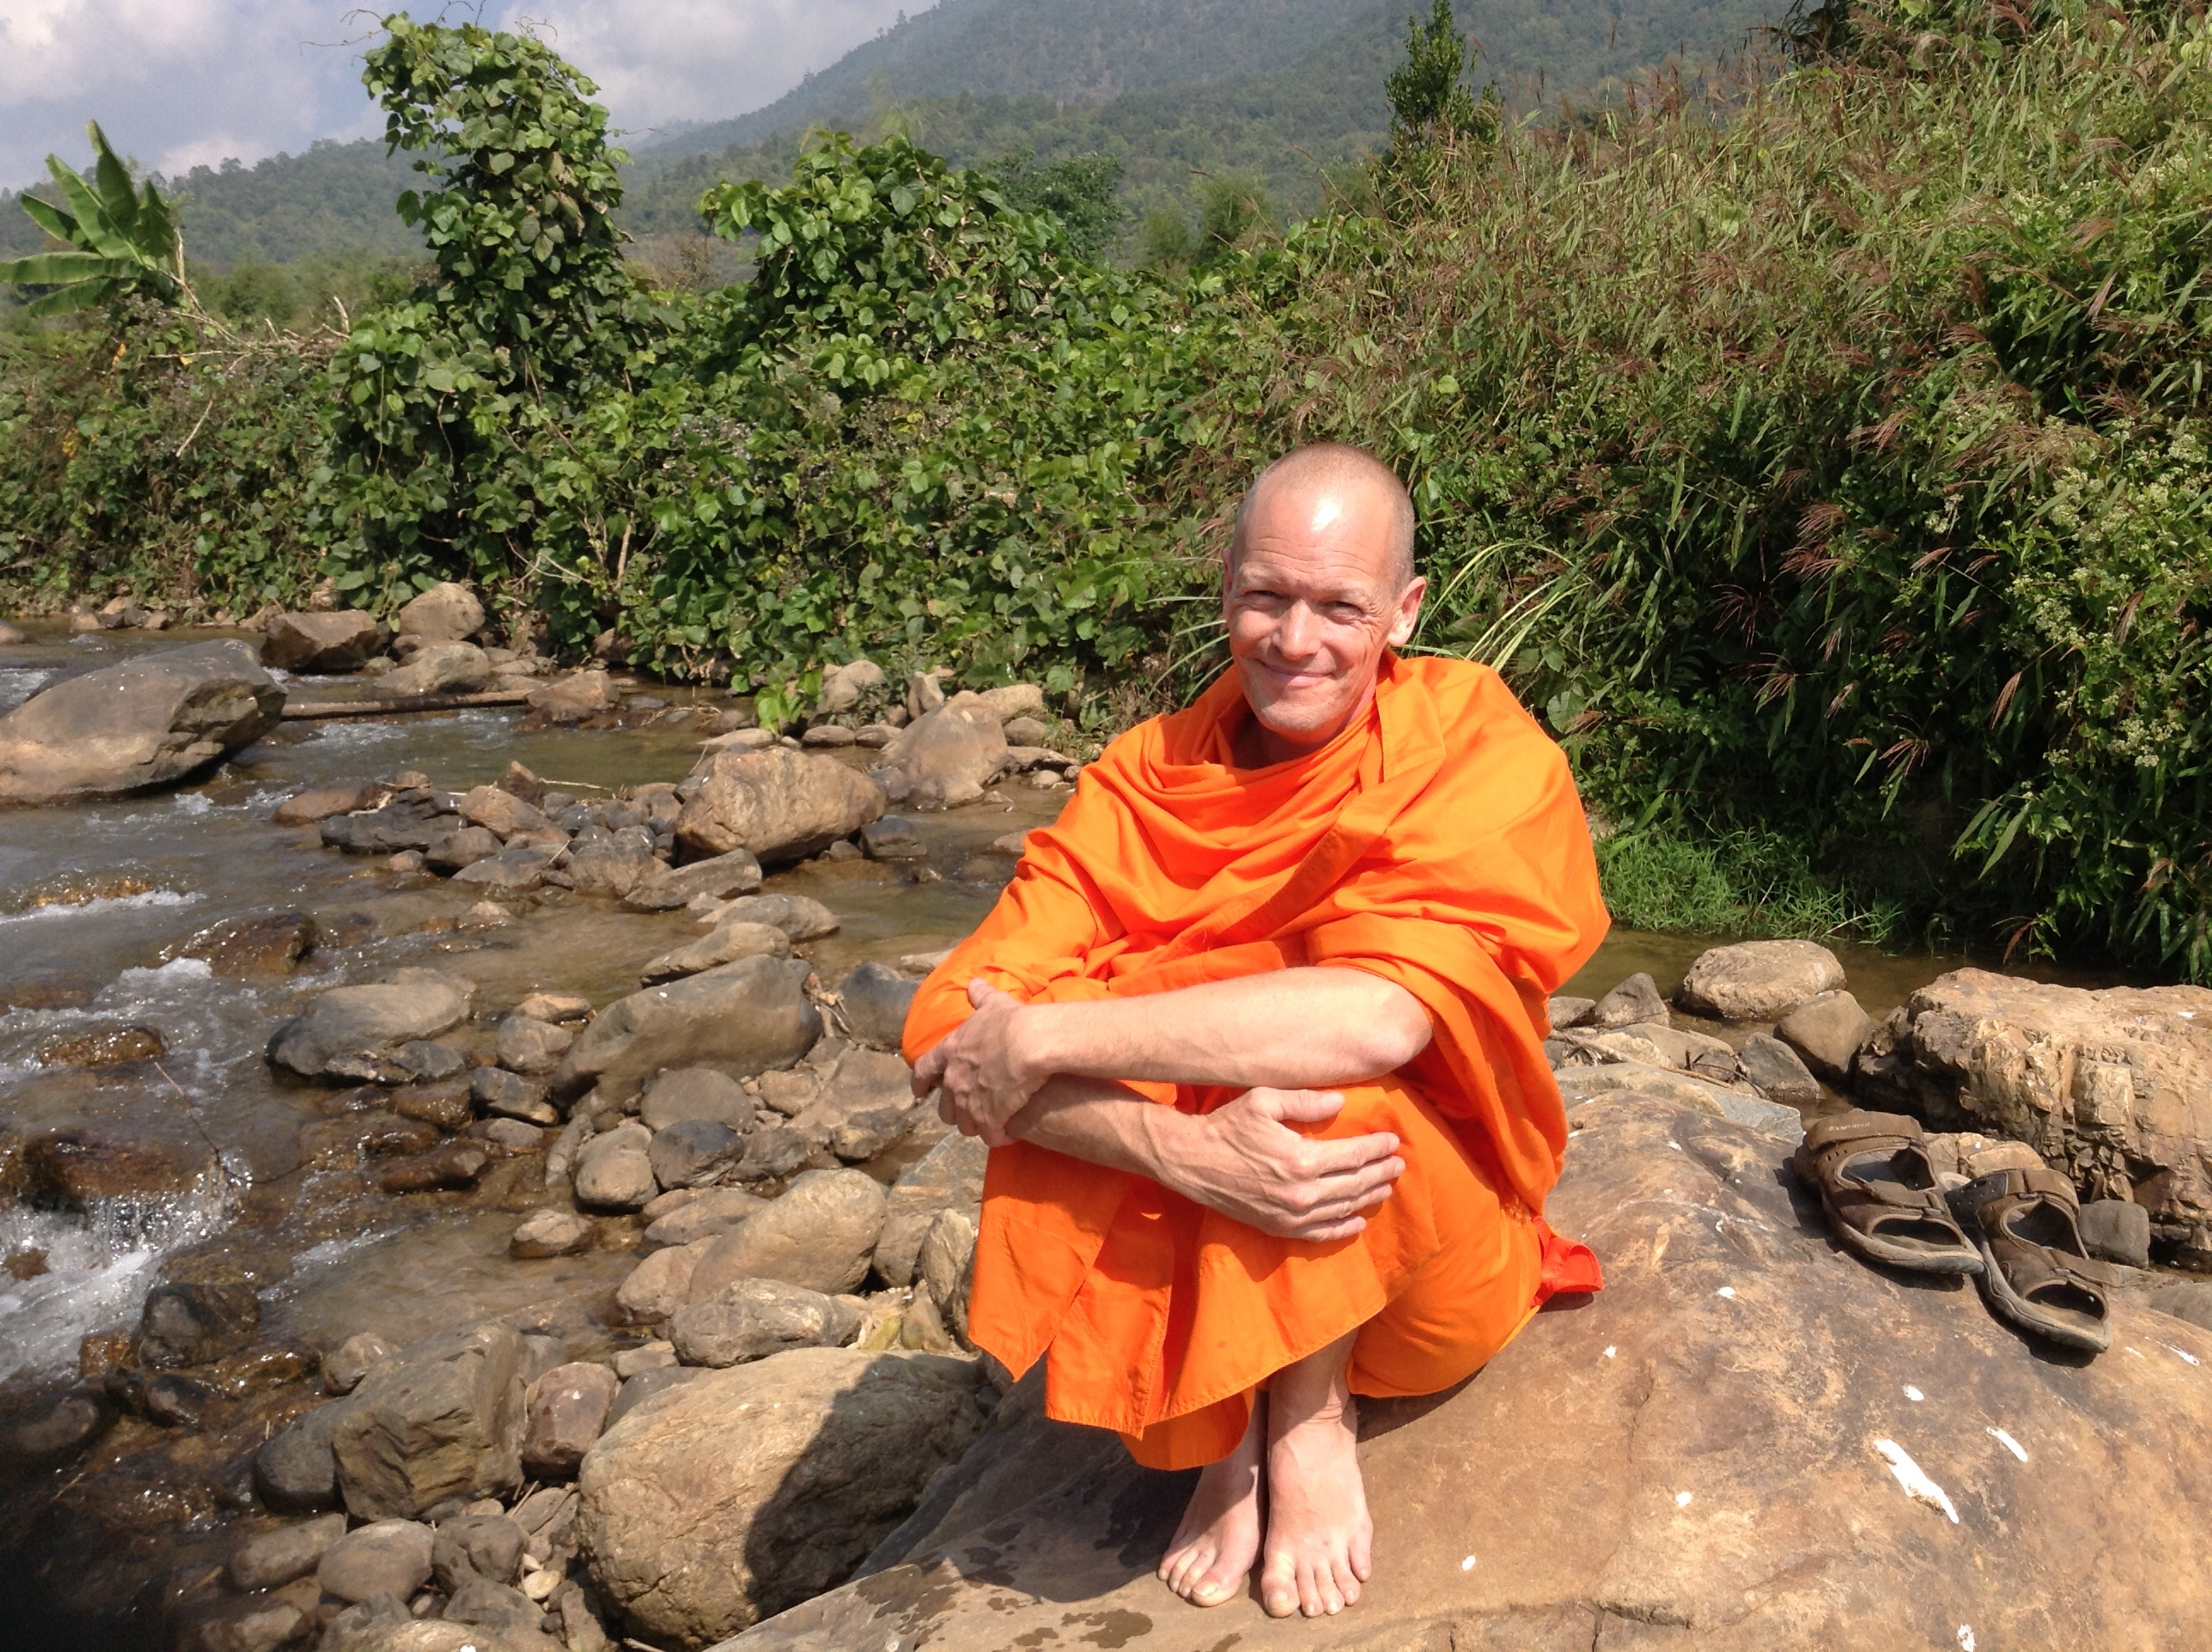 spiritual awakening, goal of Buddhism, teachings of spirituality, inner contentment, Dhamma Tapasa, loving kindness, mindfulness sayings, personal development through mindfulness, personal meditation experience, developing minds, Monk, search for enlightenment,